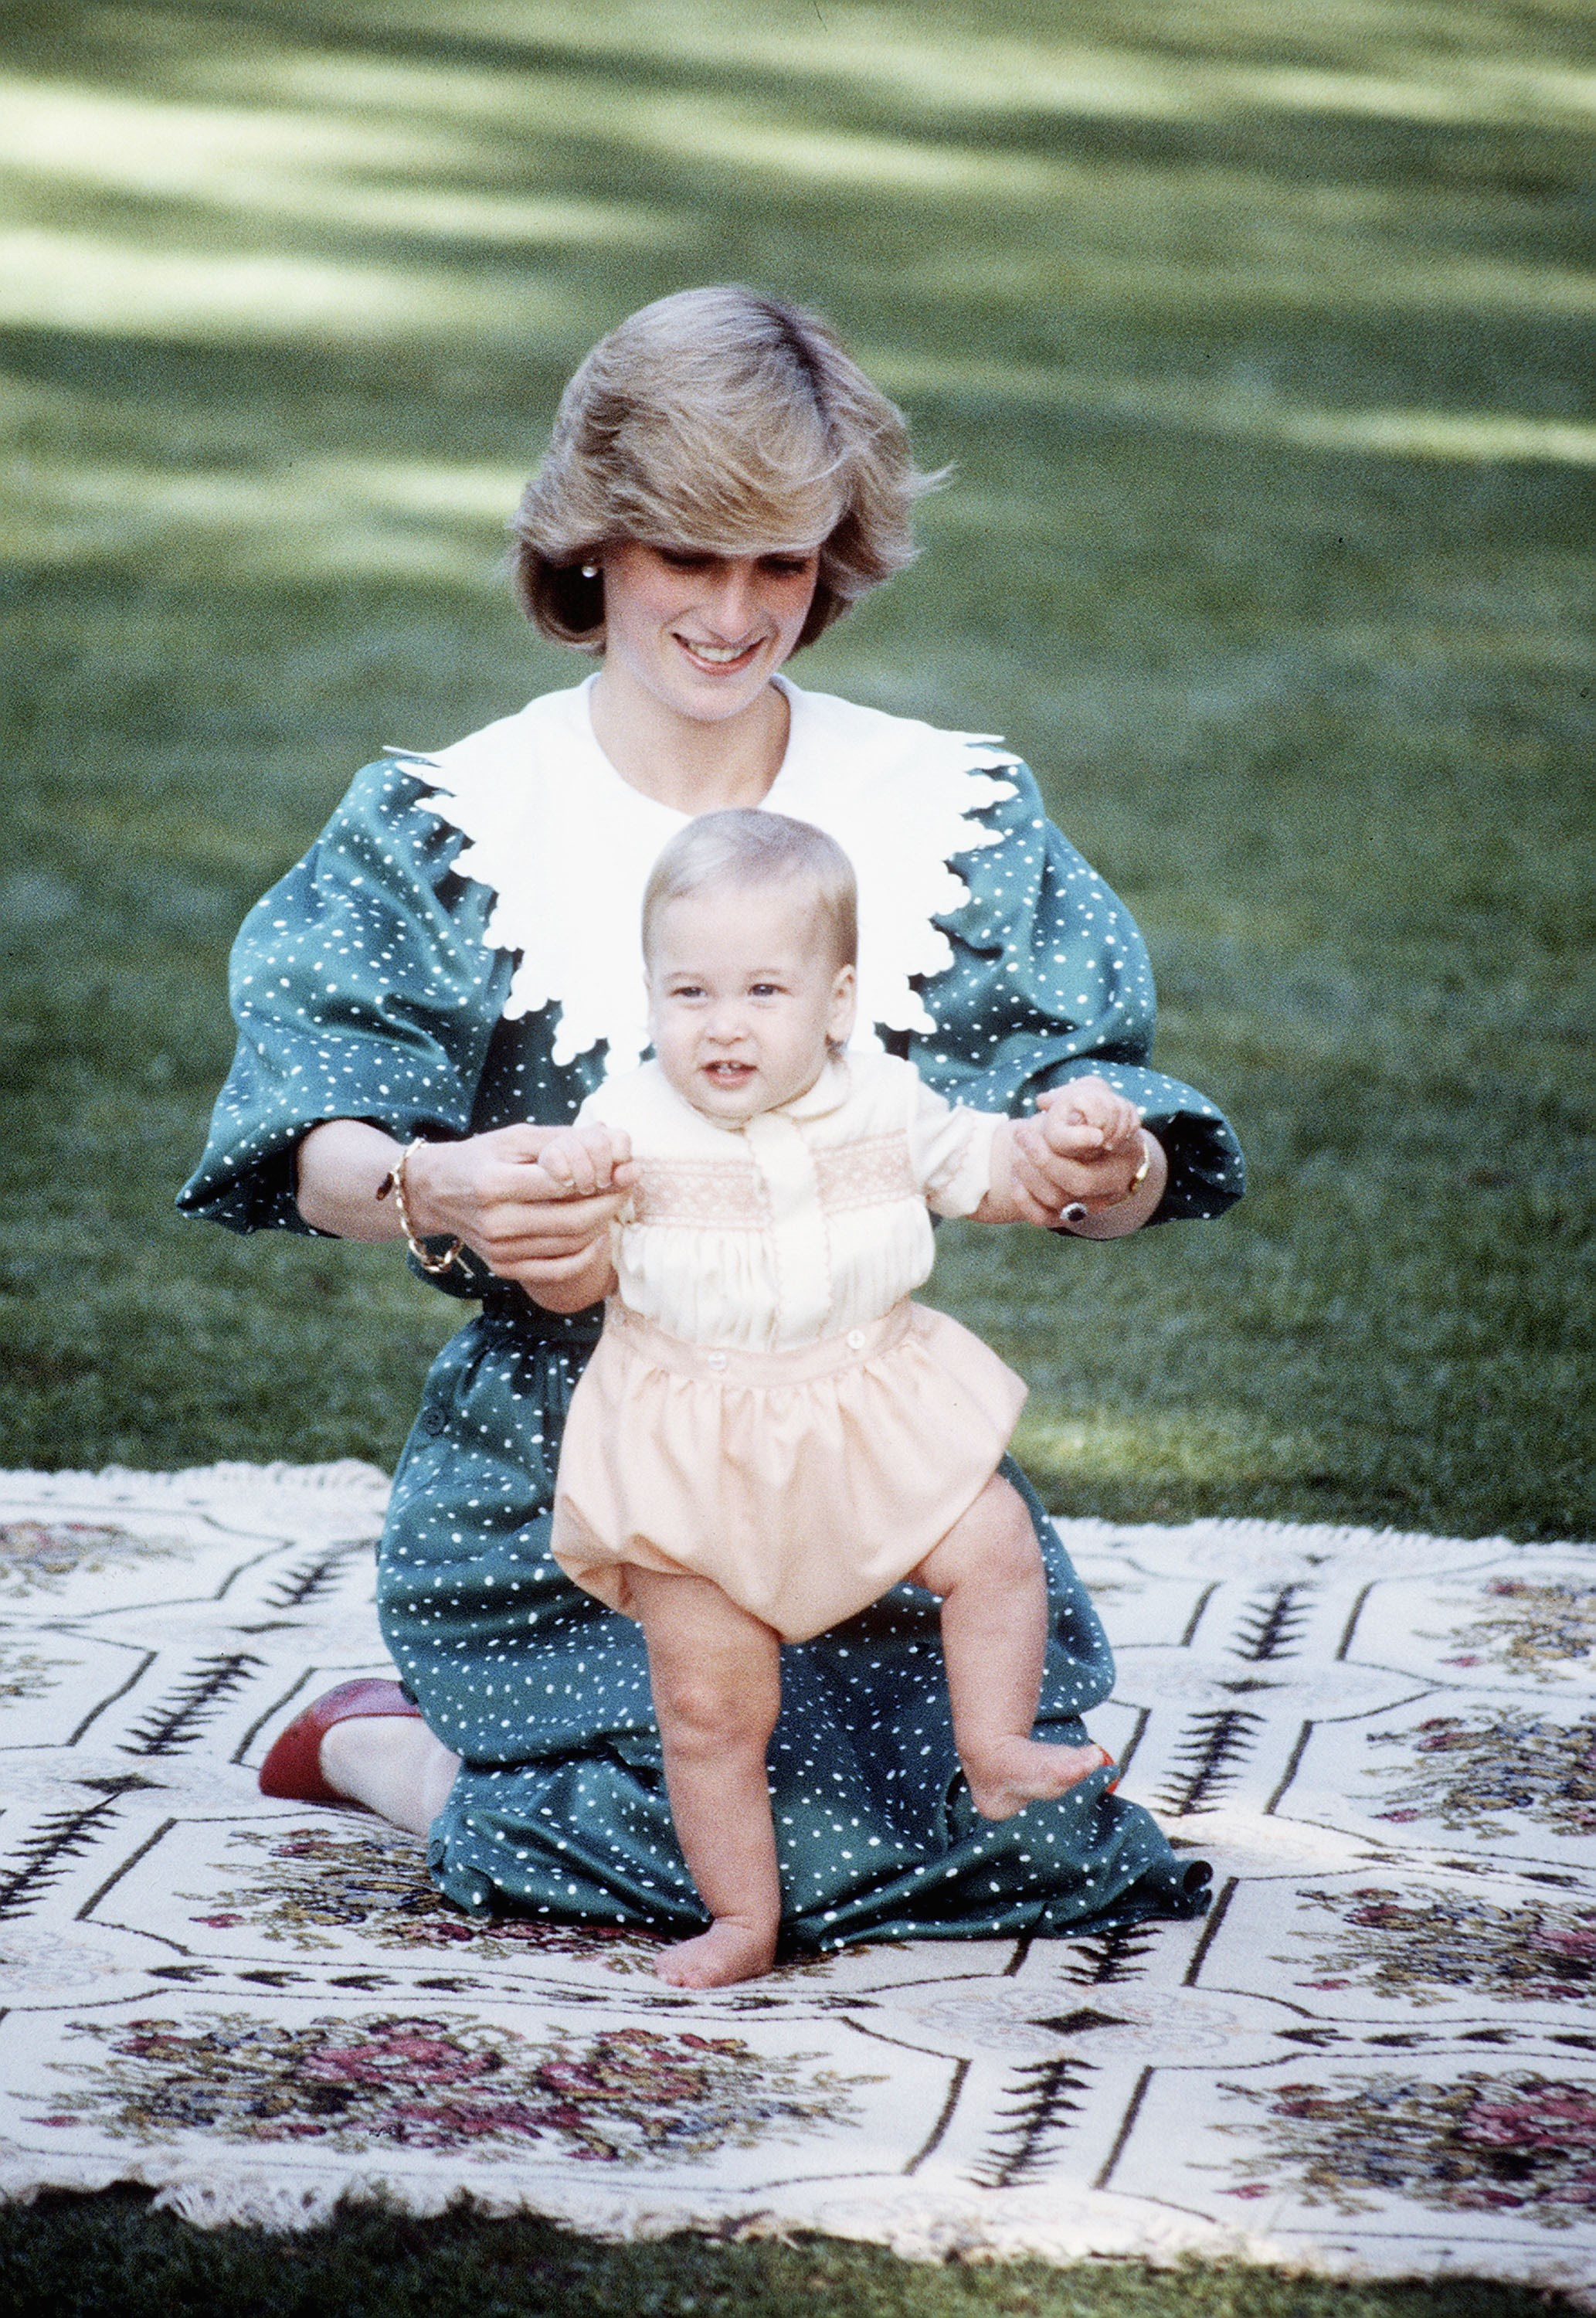 Prince William is seen with his mother the late Princess Diana during their 1983 official visit to New Zealand, in April 1983